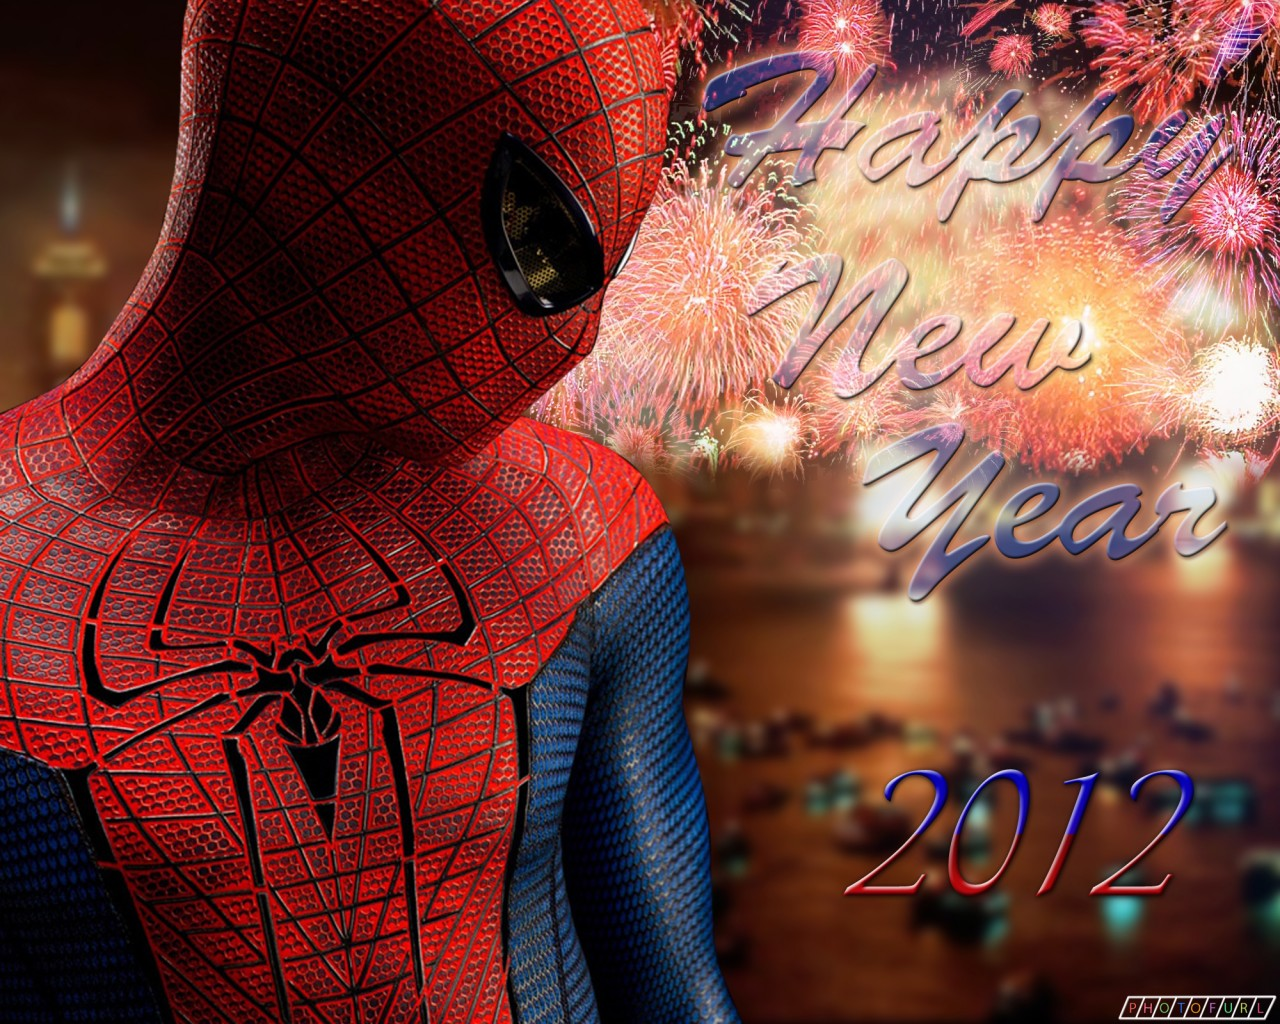 https://4.bp.blogspot.com/-mbi8DNlX5i4/TseEBhPkx7I/AAAAAAAAAqk/tZojMo5o6sY/s1600/2012-new-year-wallpaper-free-download.jpg